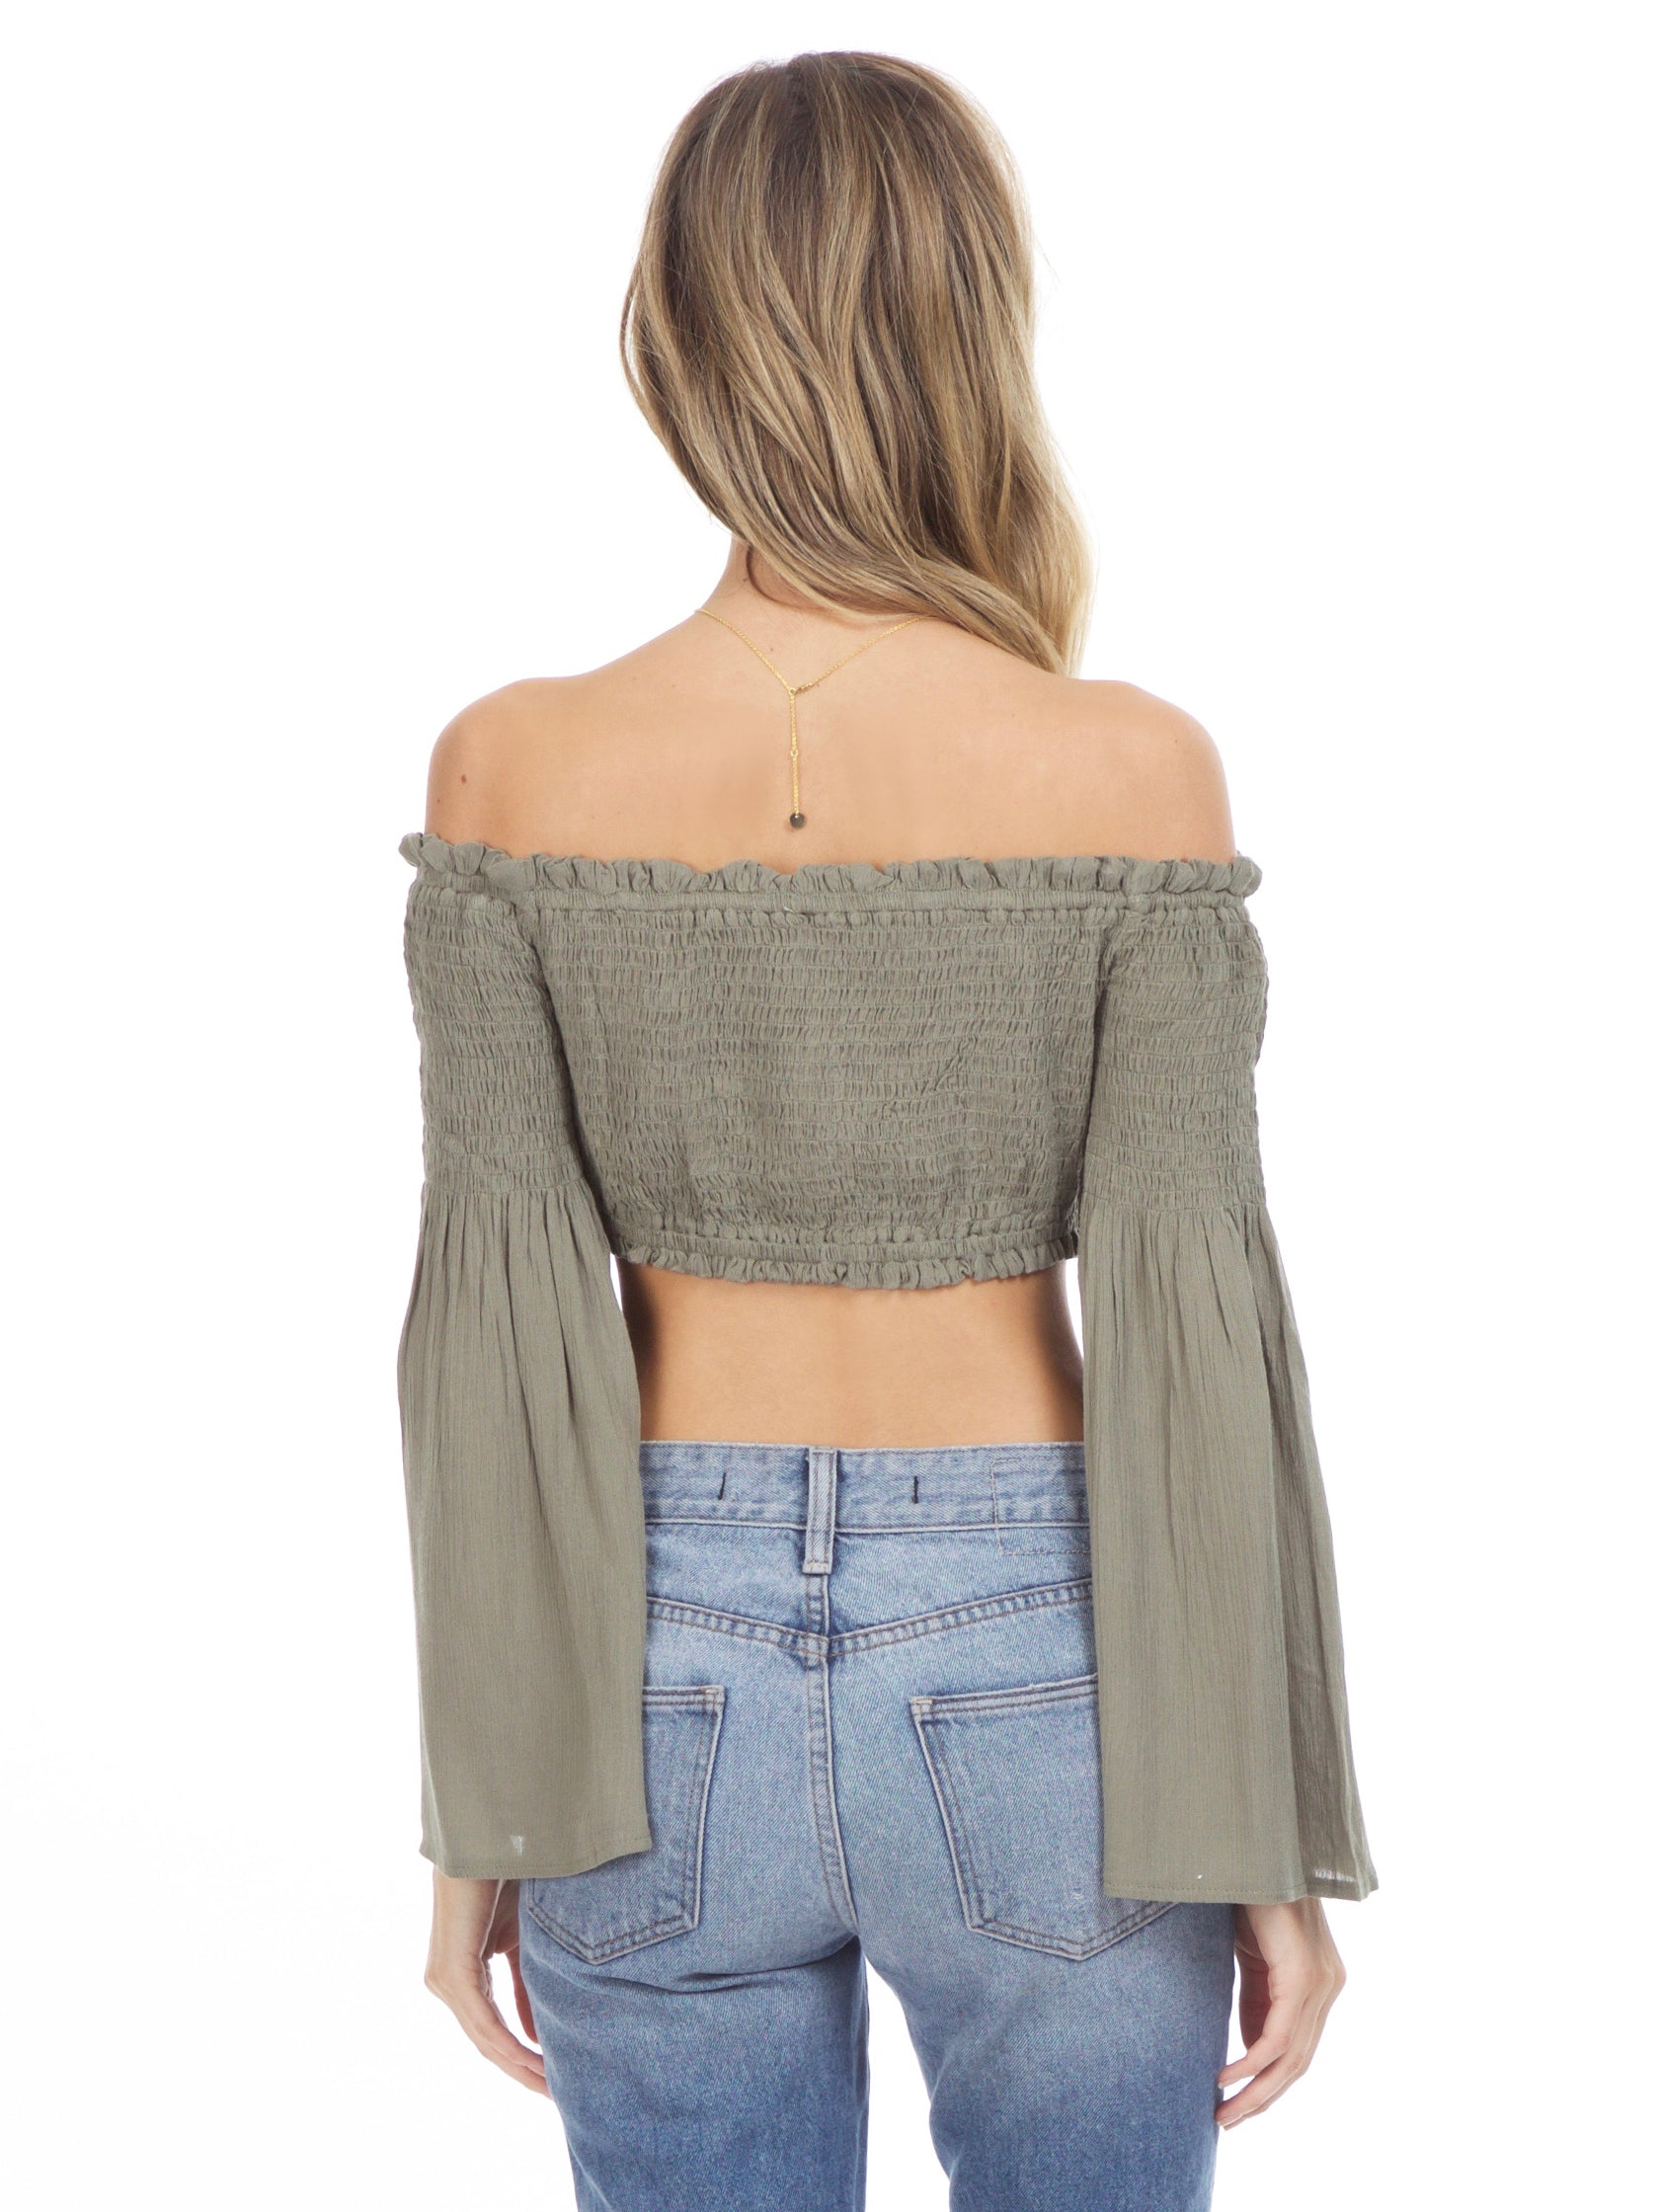 Women outfit in a top rental from Sadie & Sage called Olive Crop Top